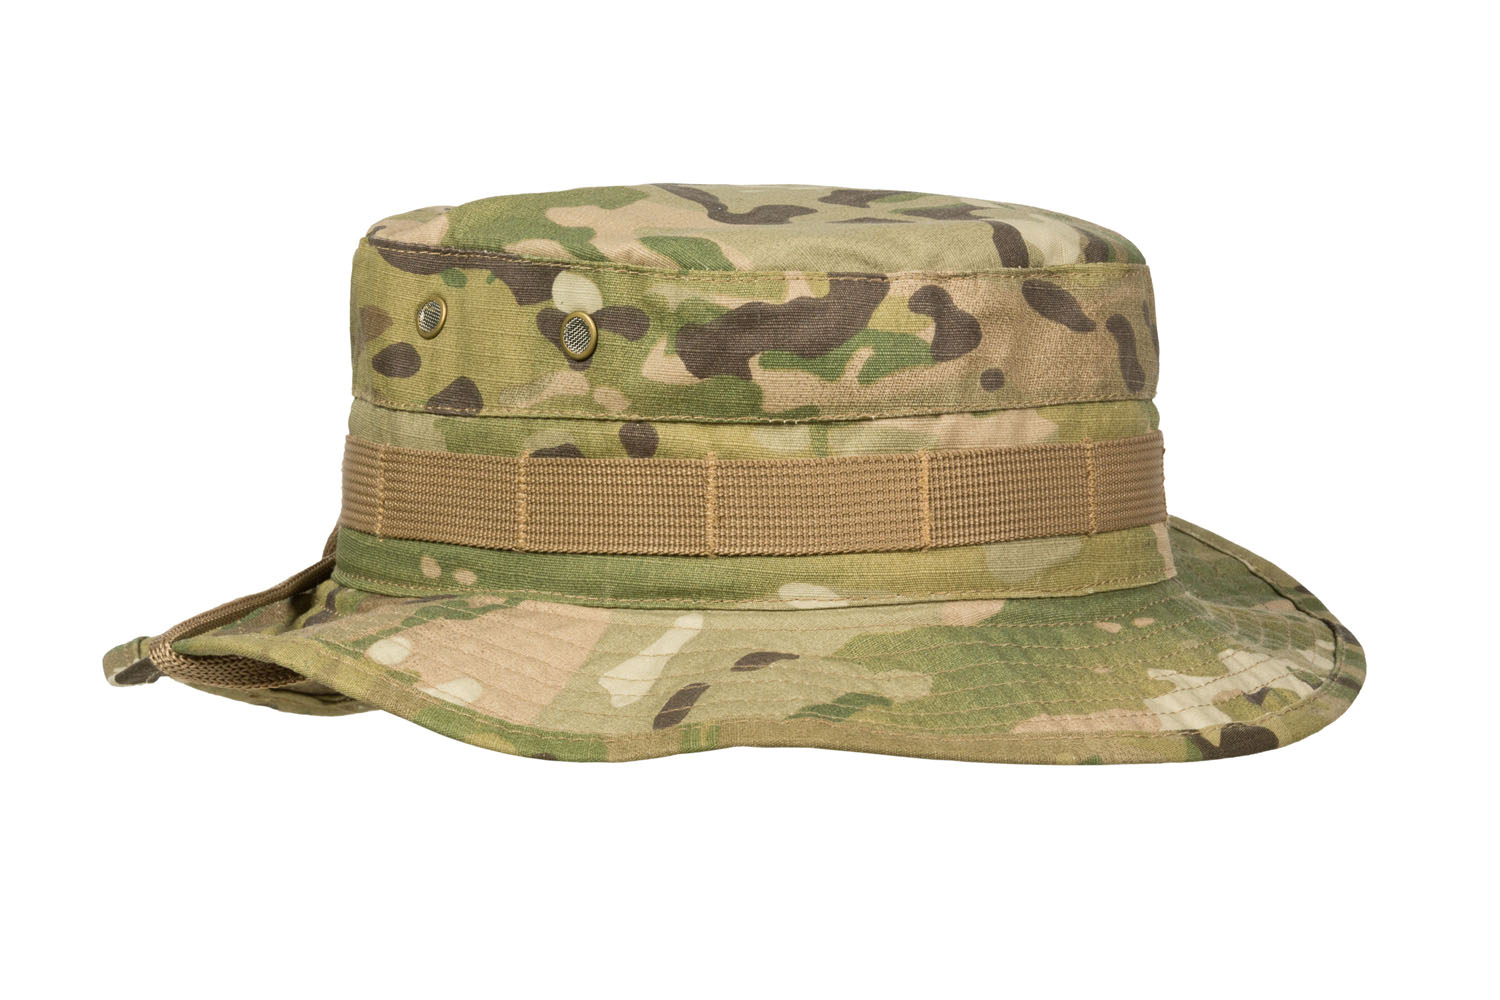 Tropical field boonie hat